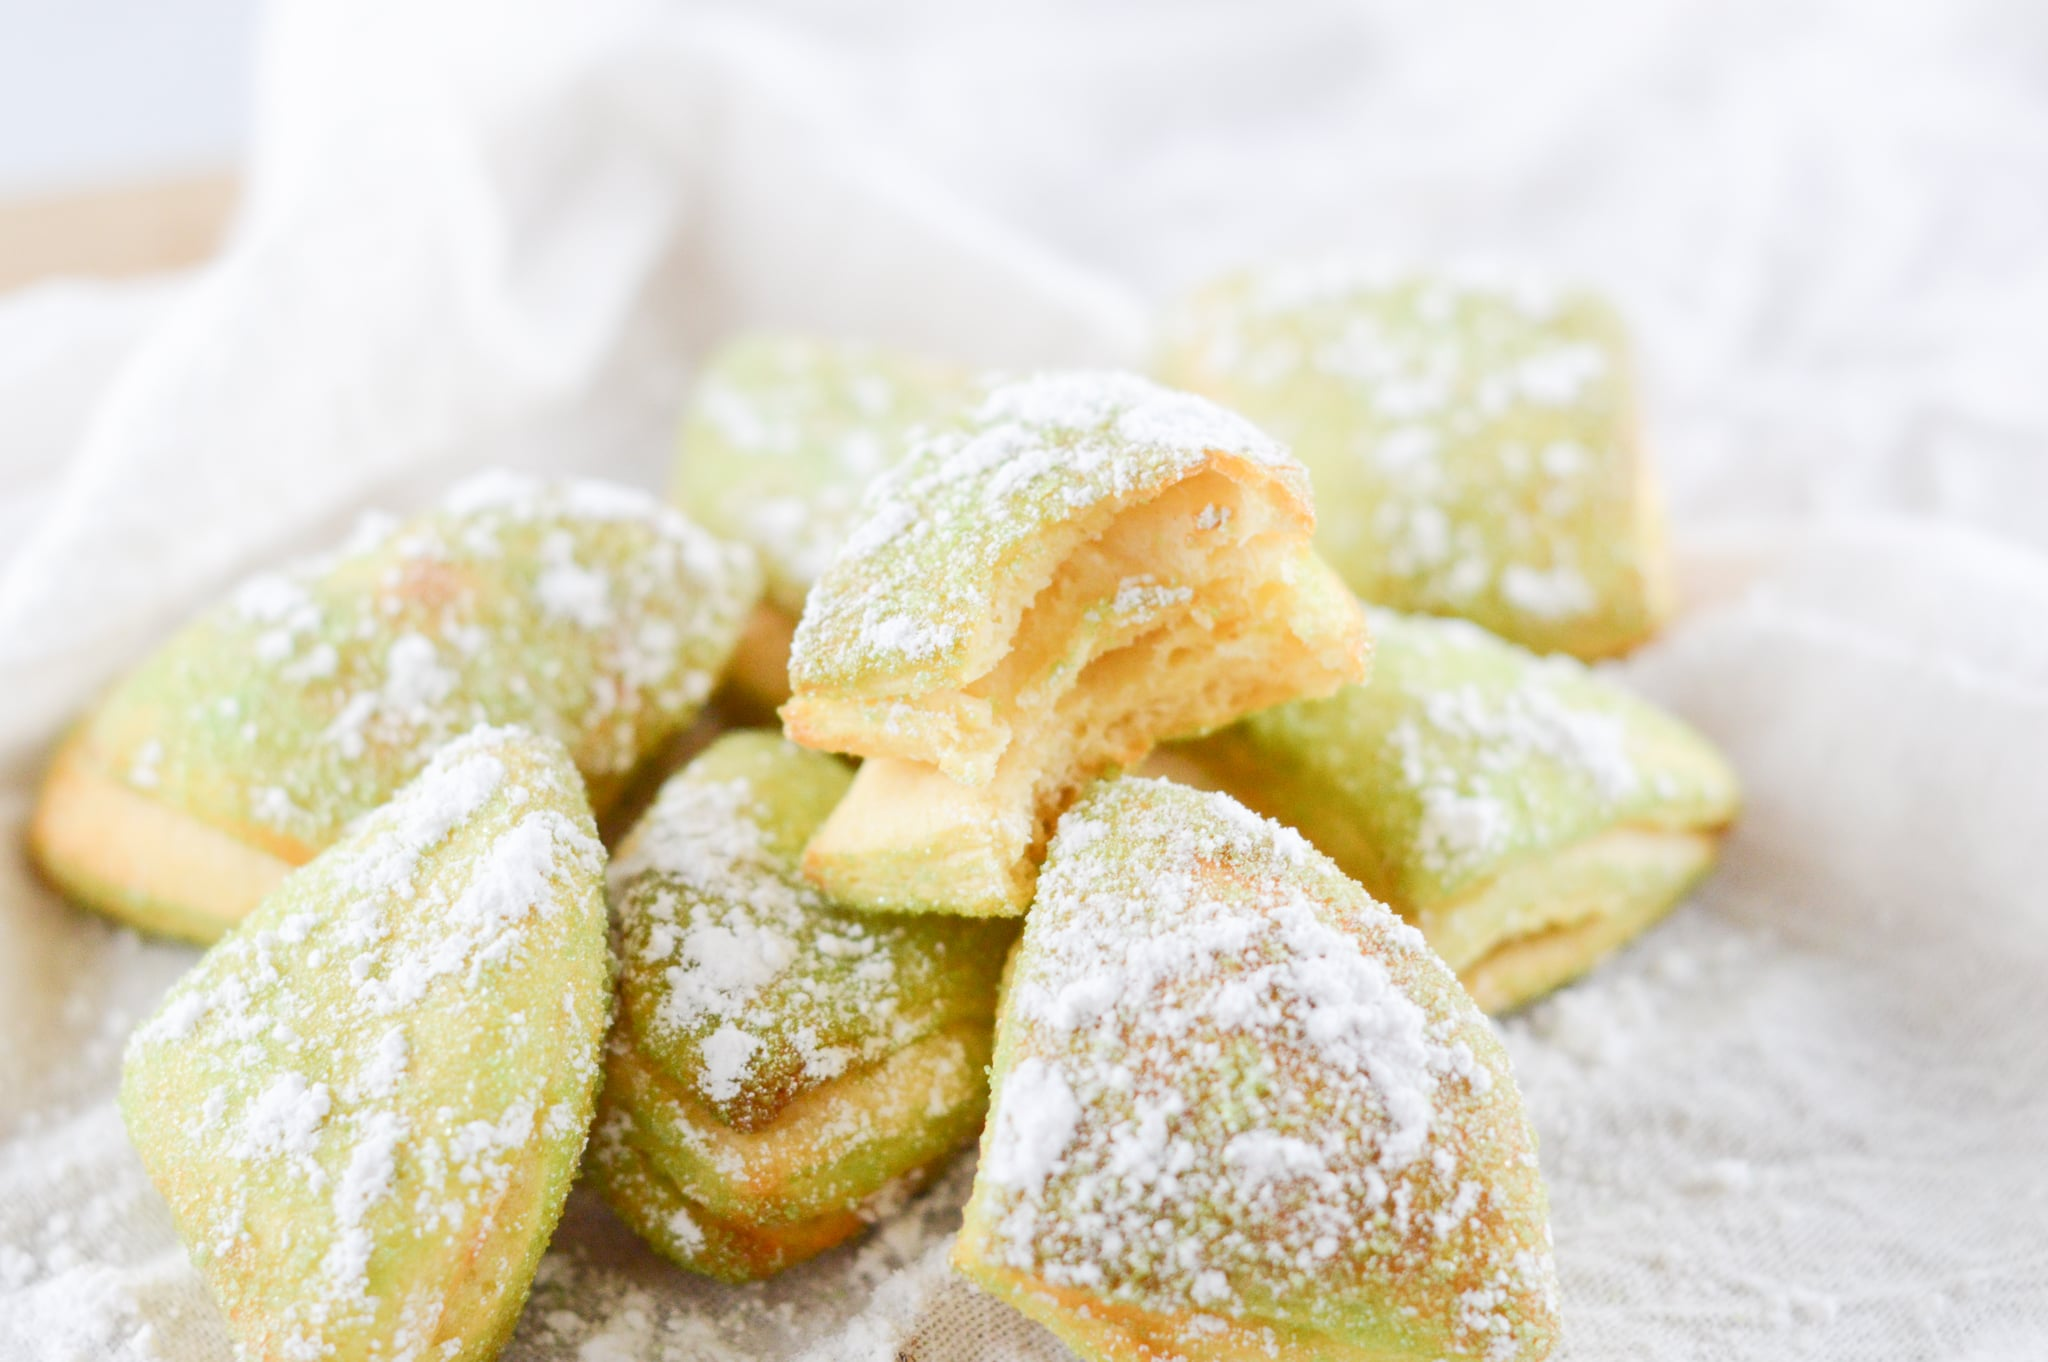 Tiana princess and the frog beignets recipe. Perfect for a Princess and the Frog movie night or a Princess and the Frog Party